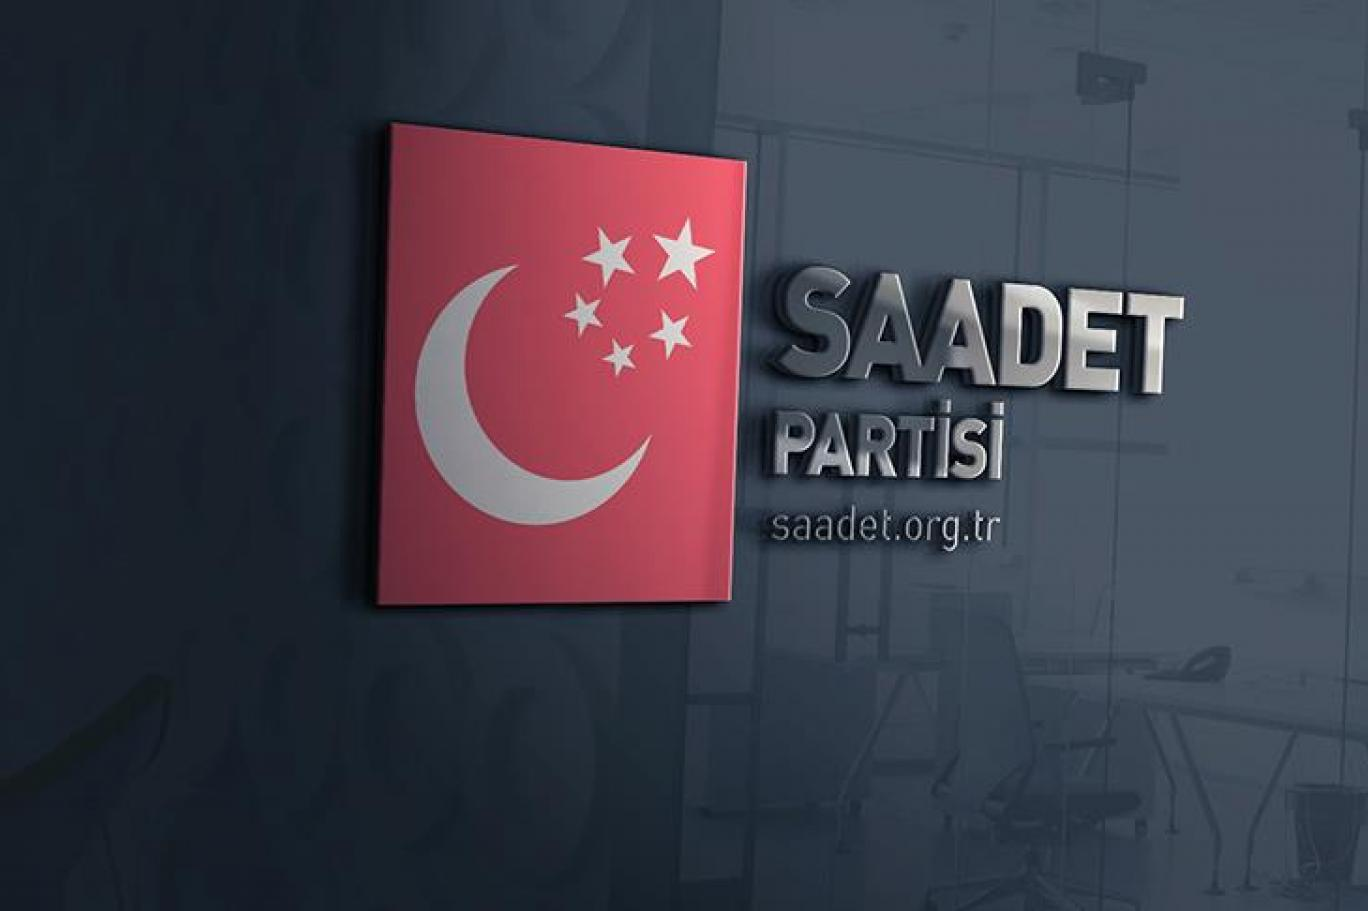 Future steps discussed at Saadet Party General Management Board